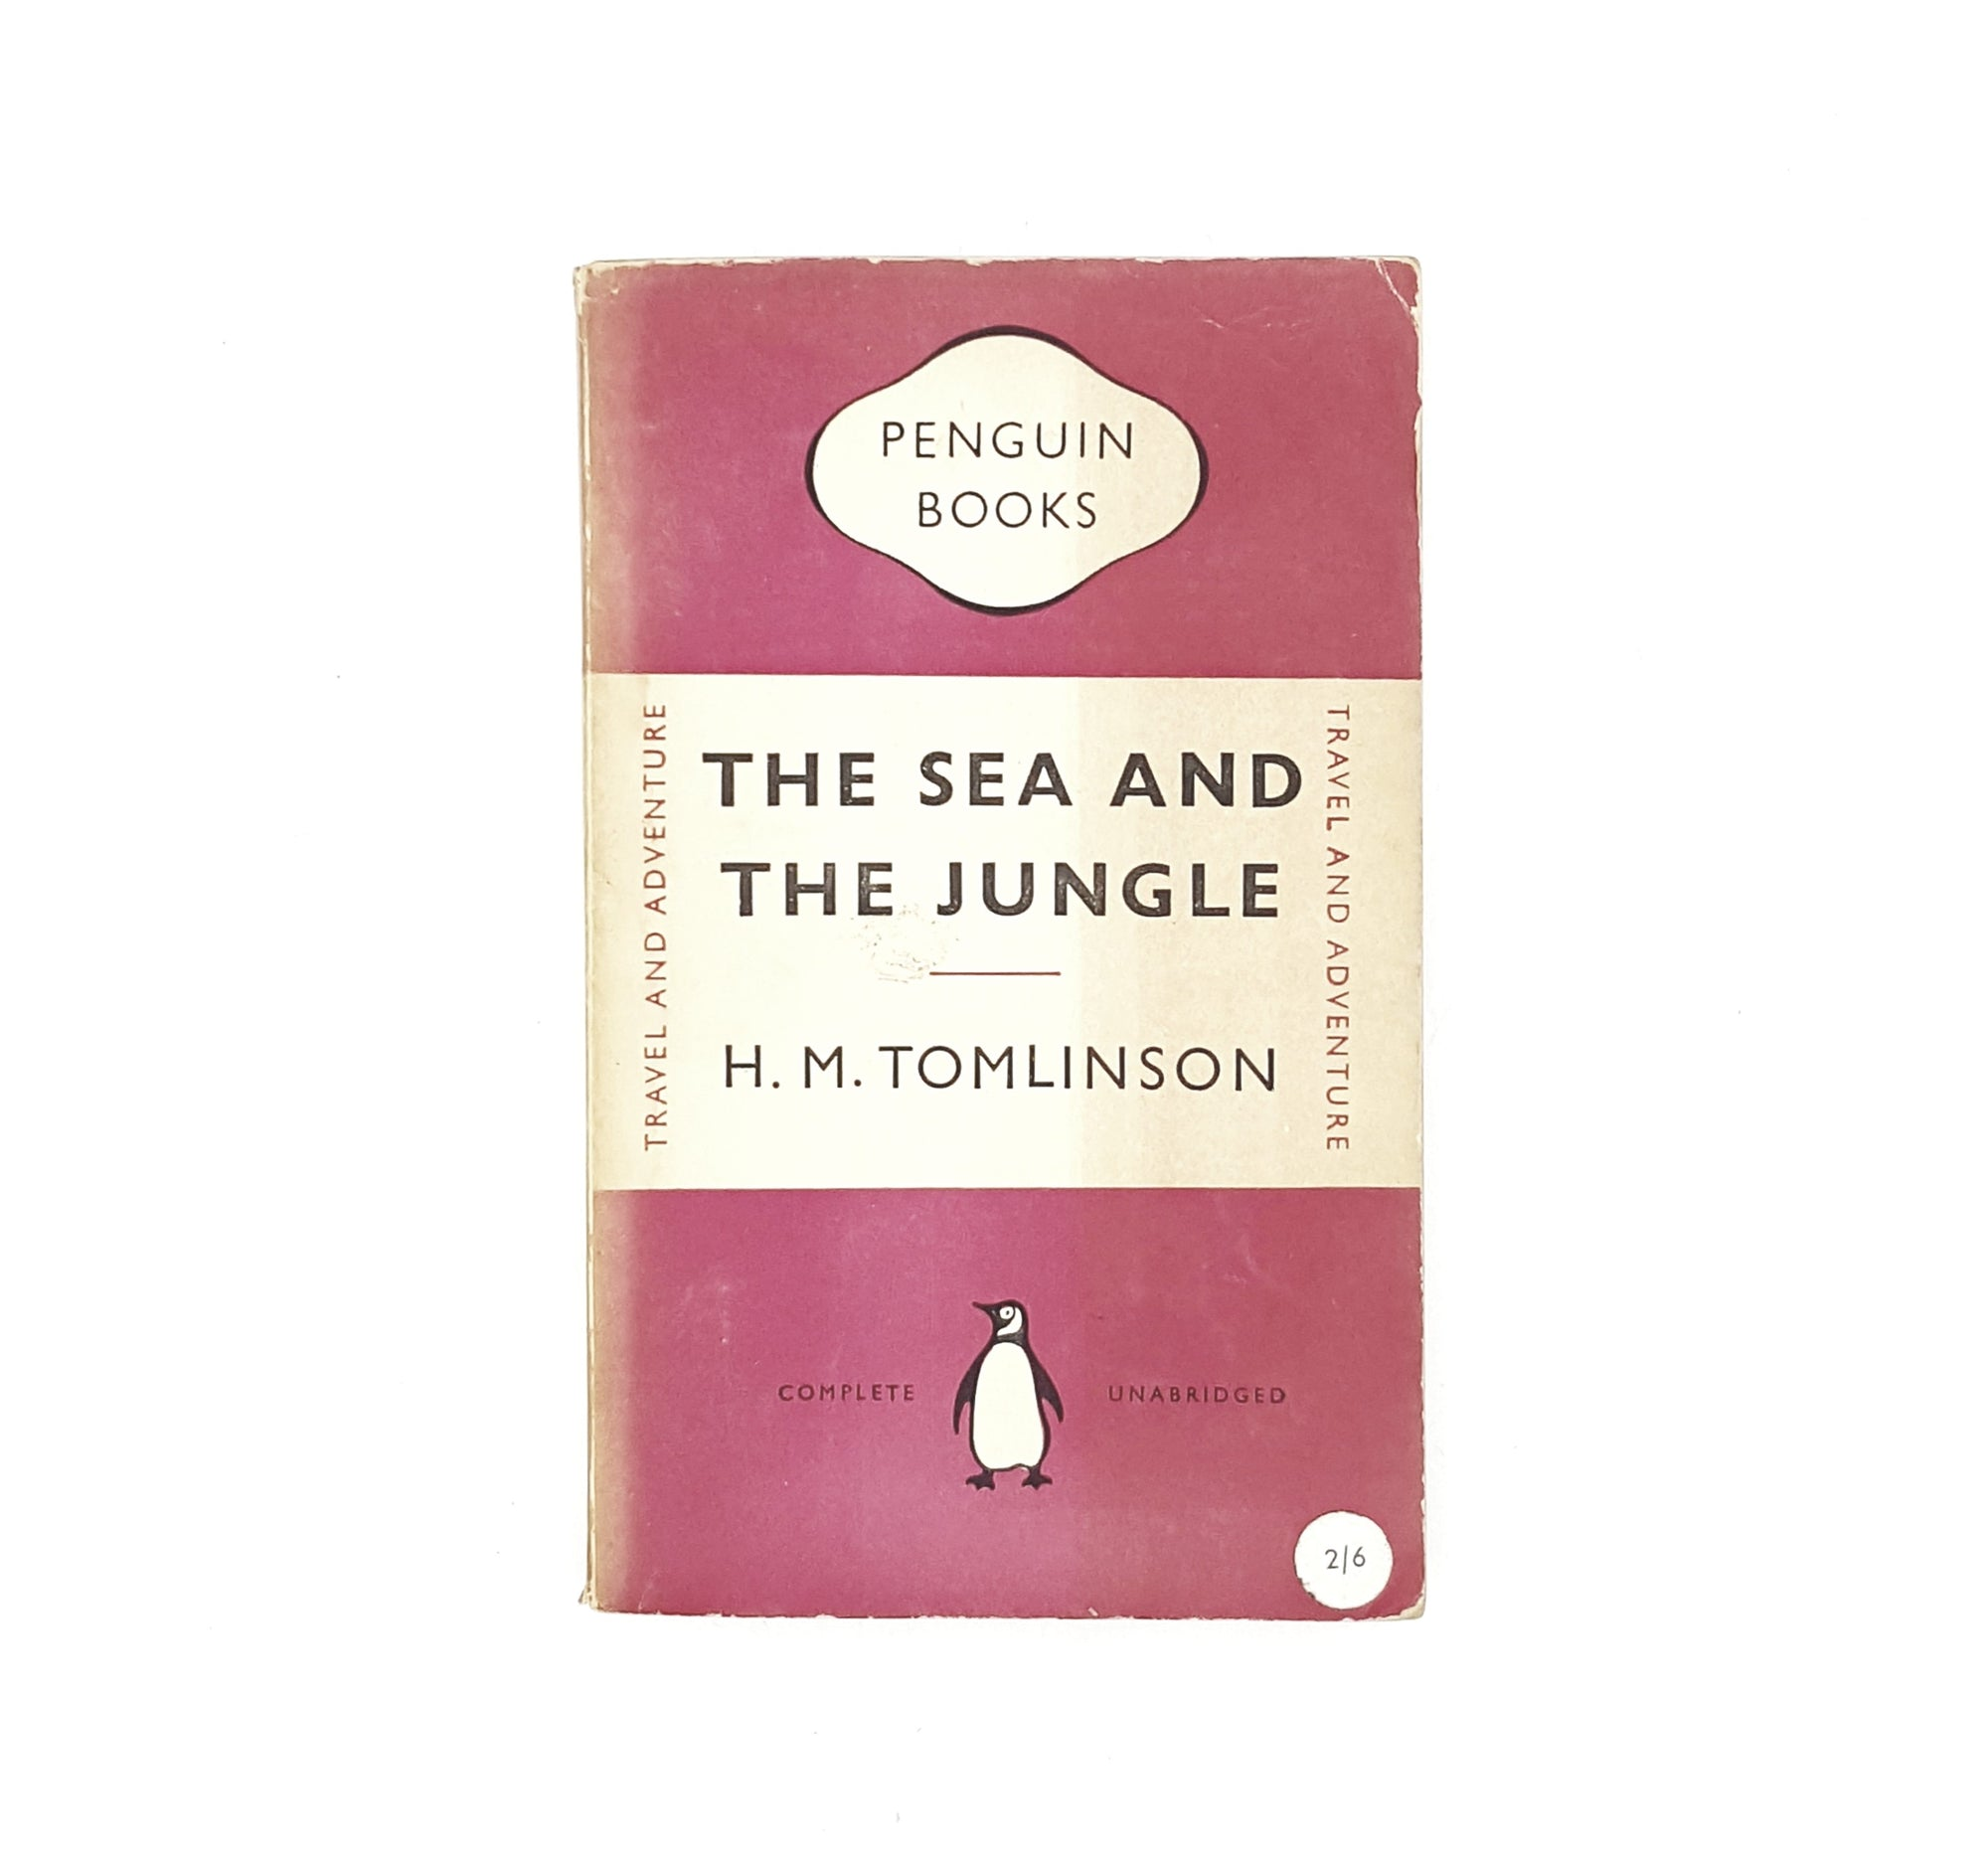 The Sea and the Jungle by H.M. Tomlinson 1953